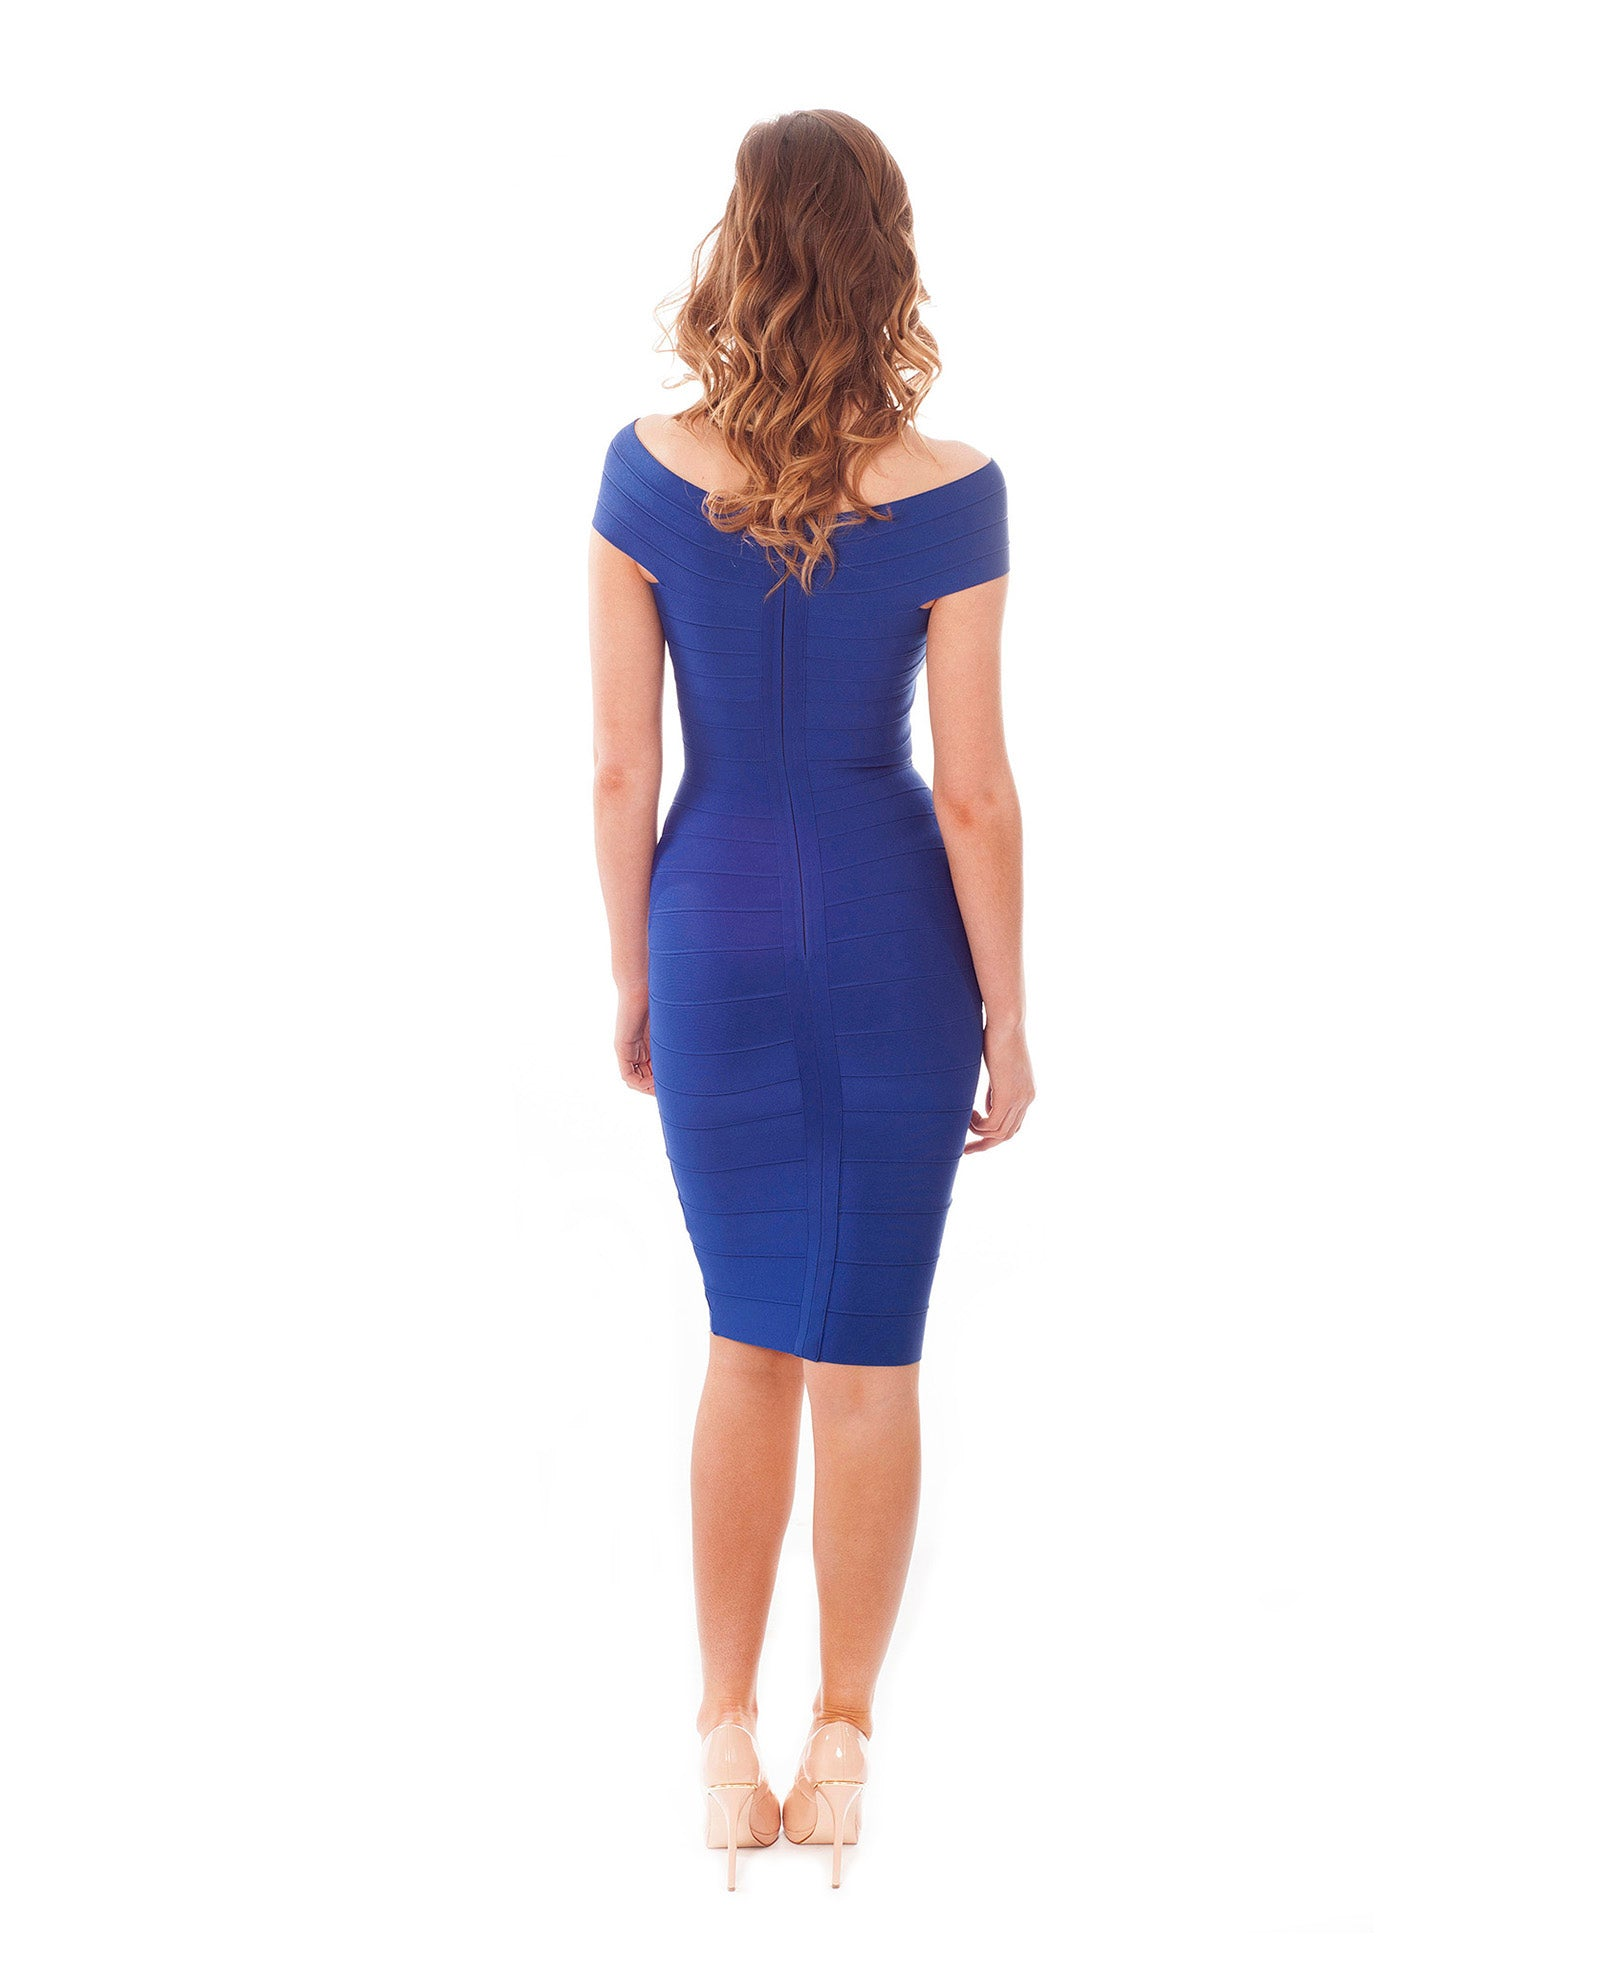 Rental dress | Off the shoulder blue bodycon midi dress | Hirestreetuk.com